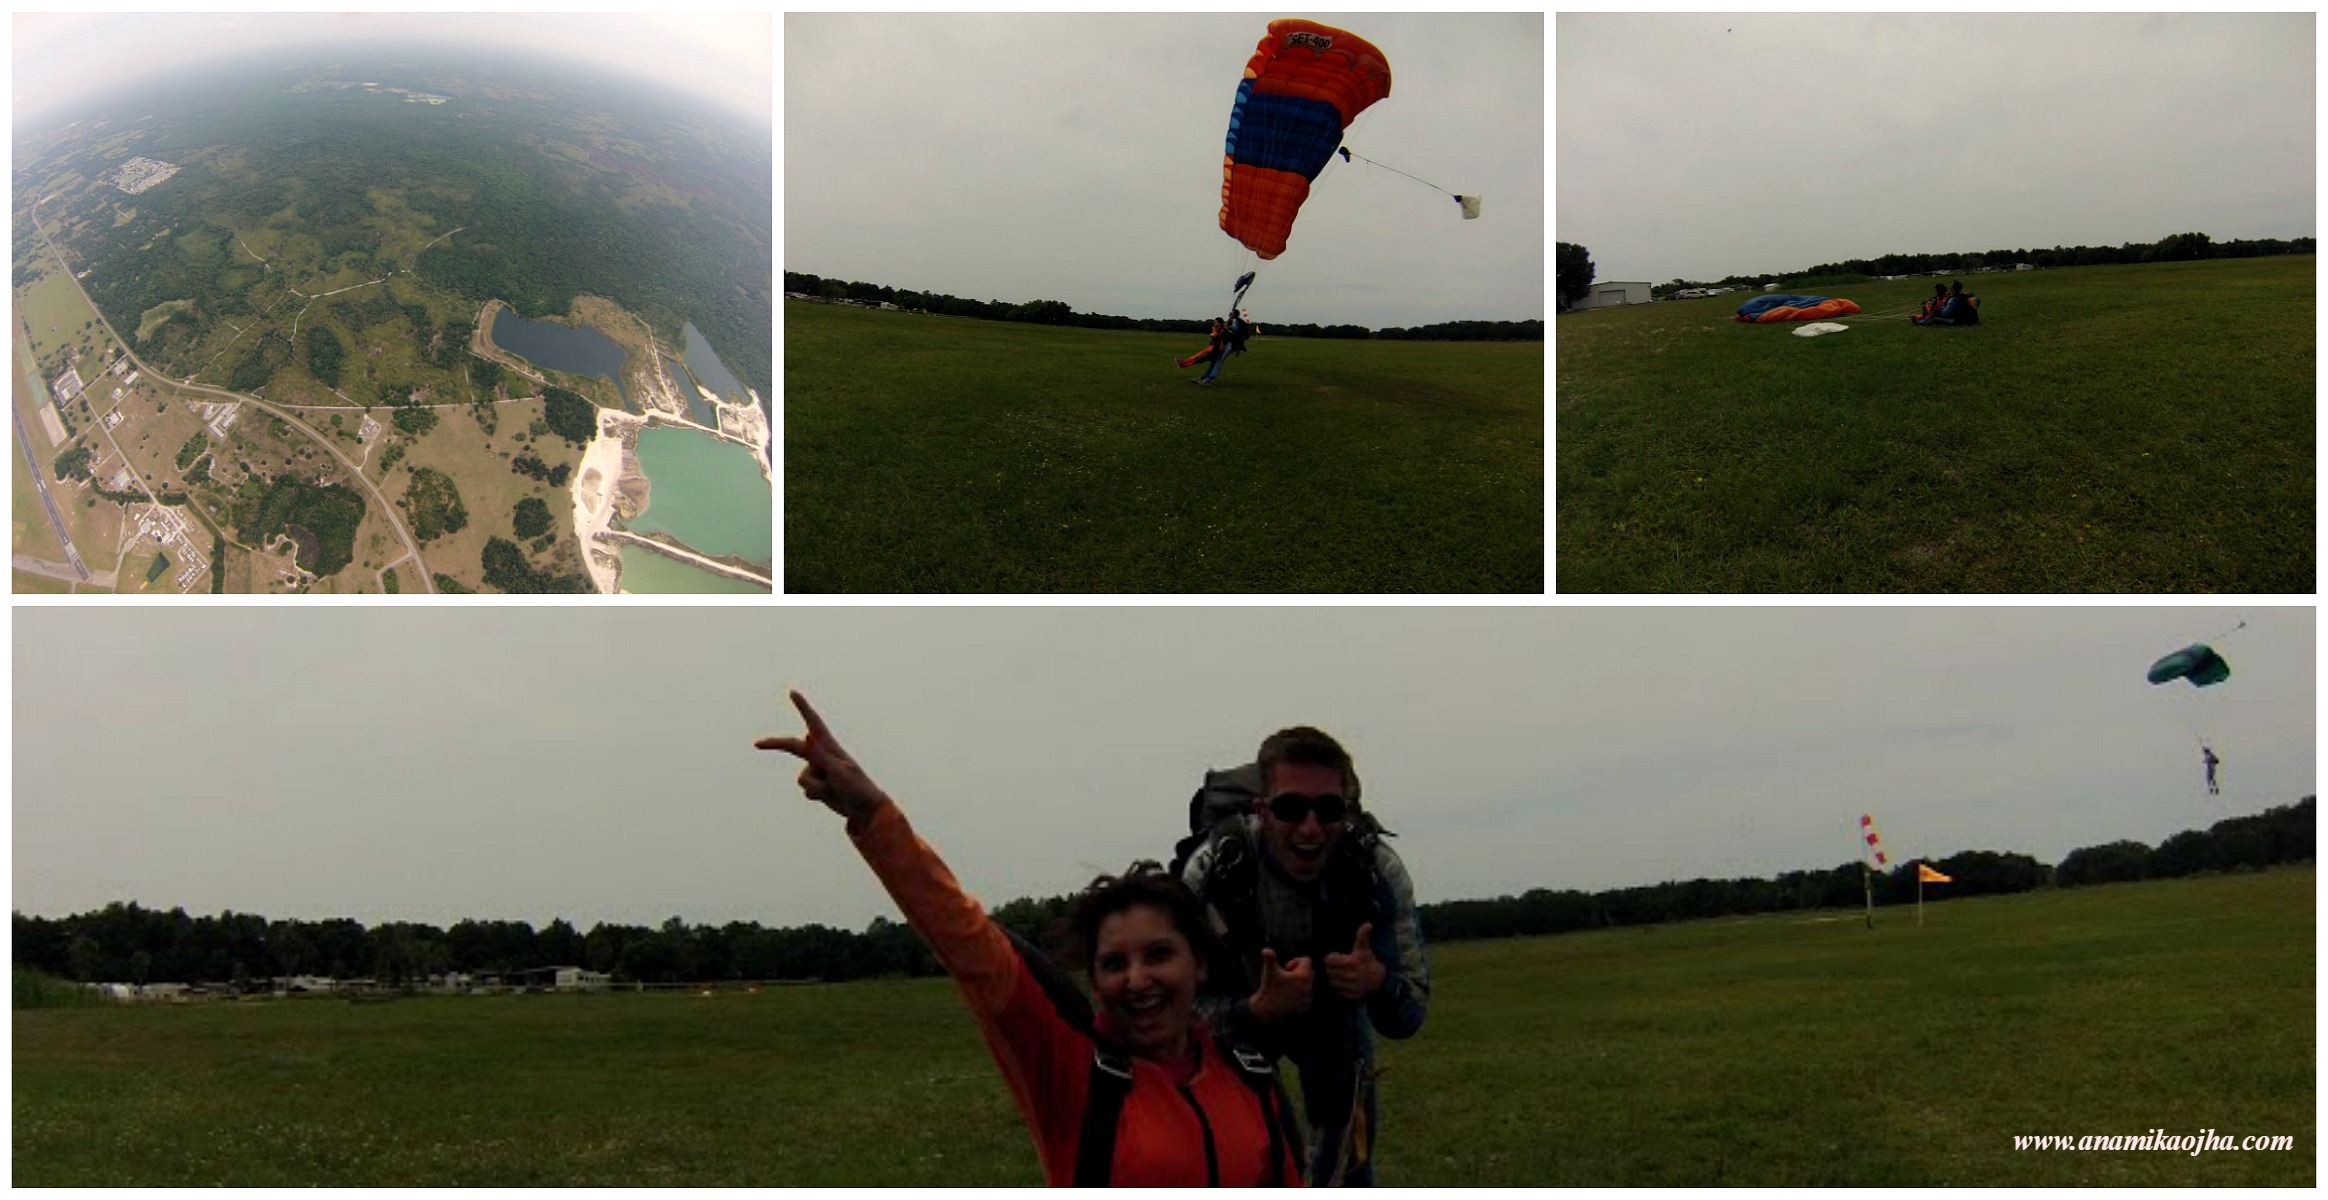 Skydiving: My First Tandem Jump Experience